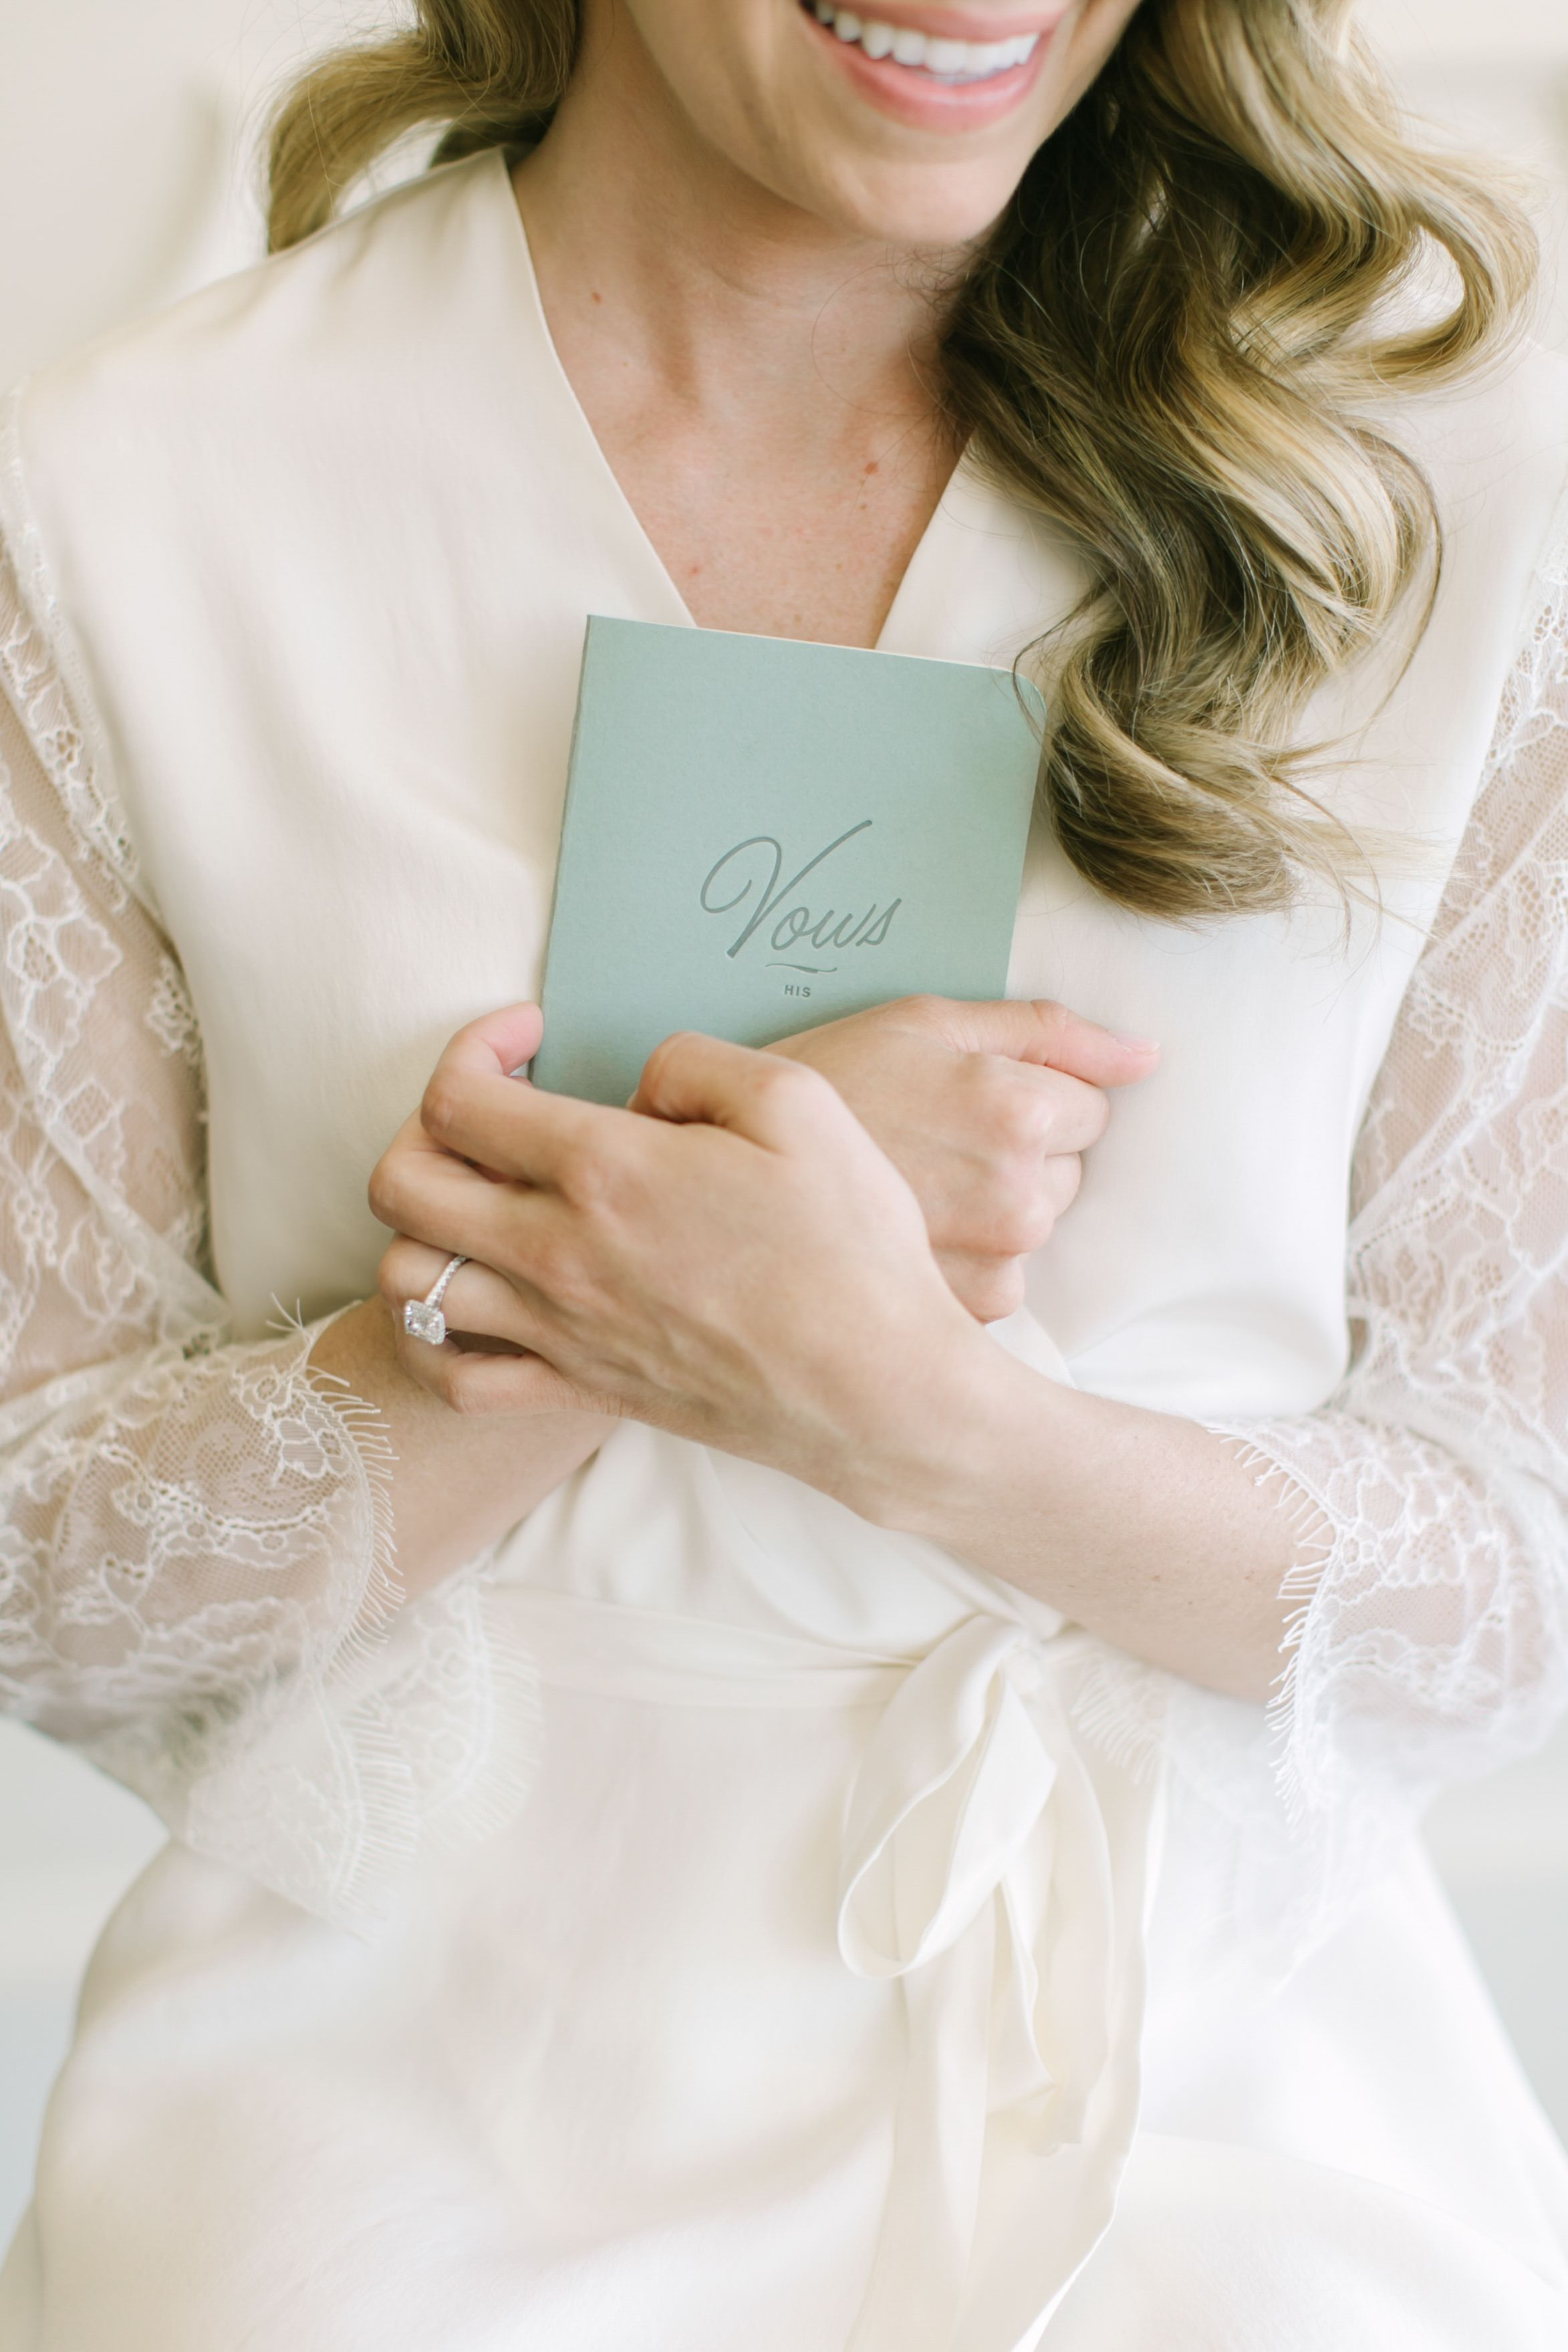 Wedding Day Rules | Photography: Love & Light